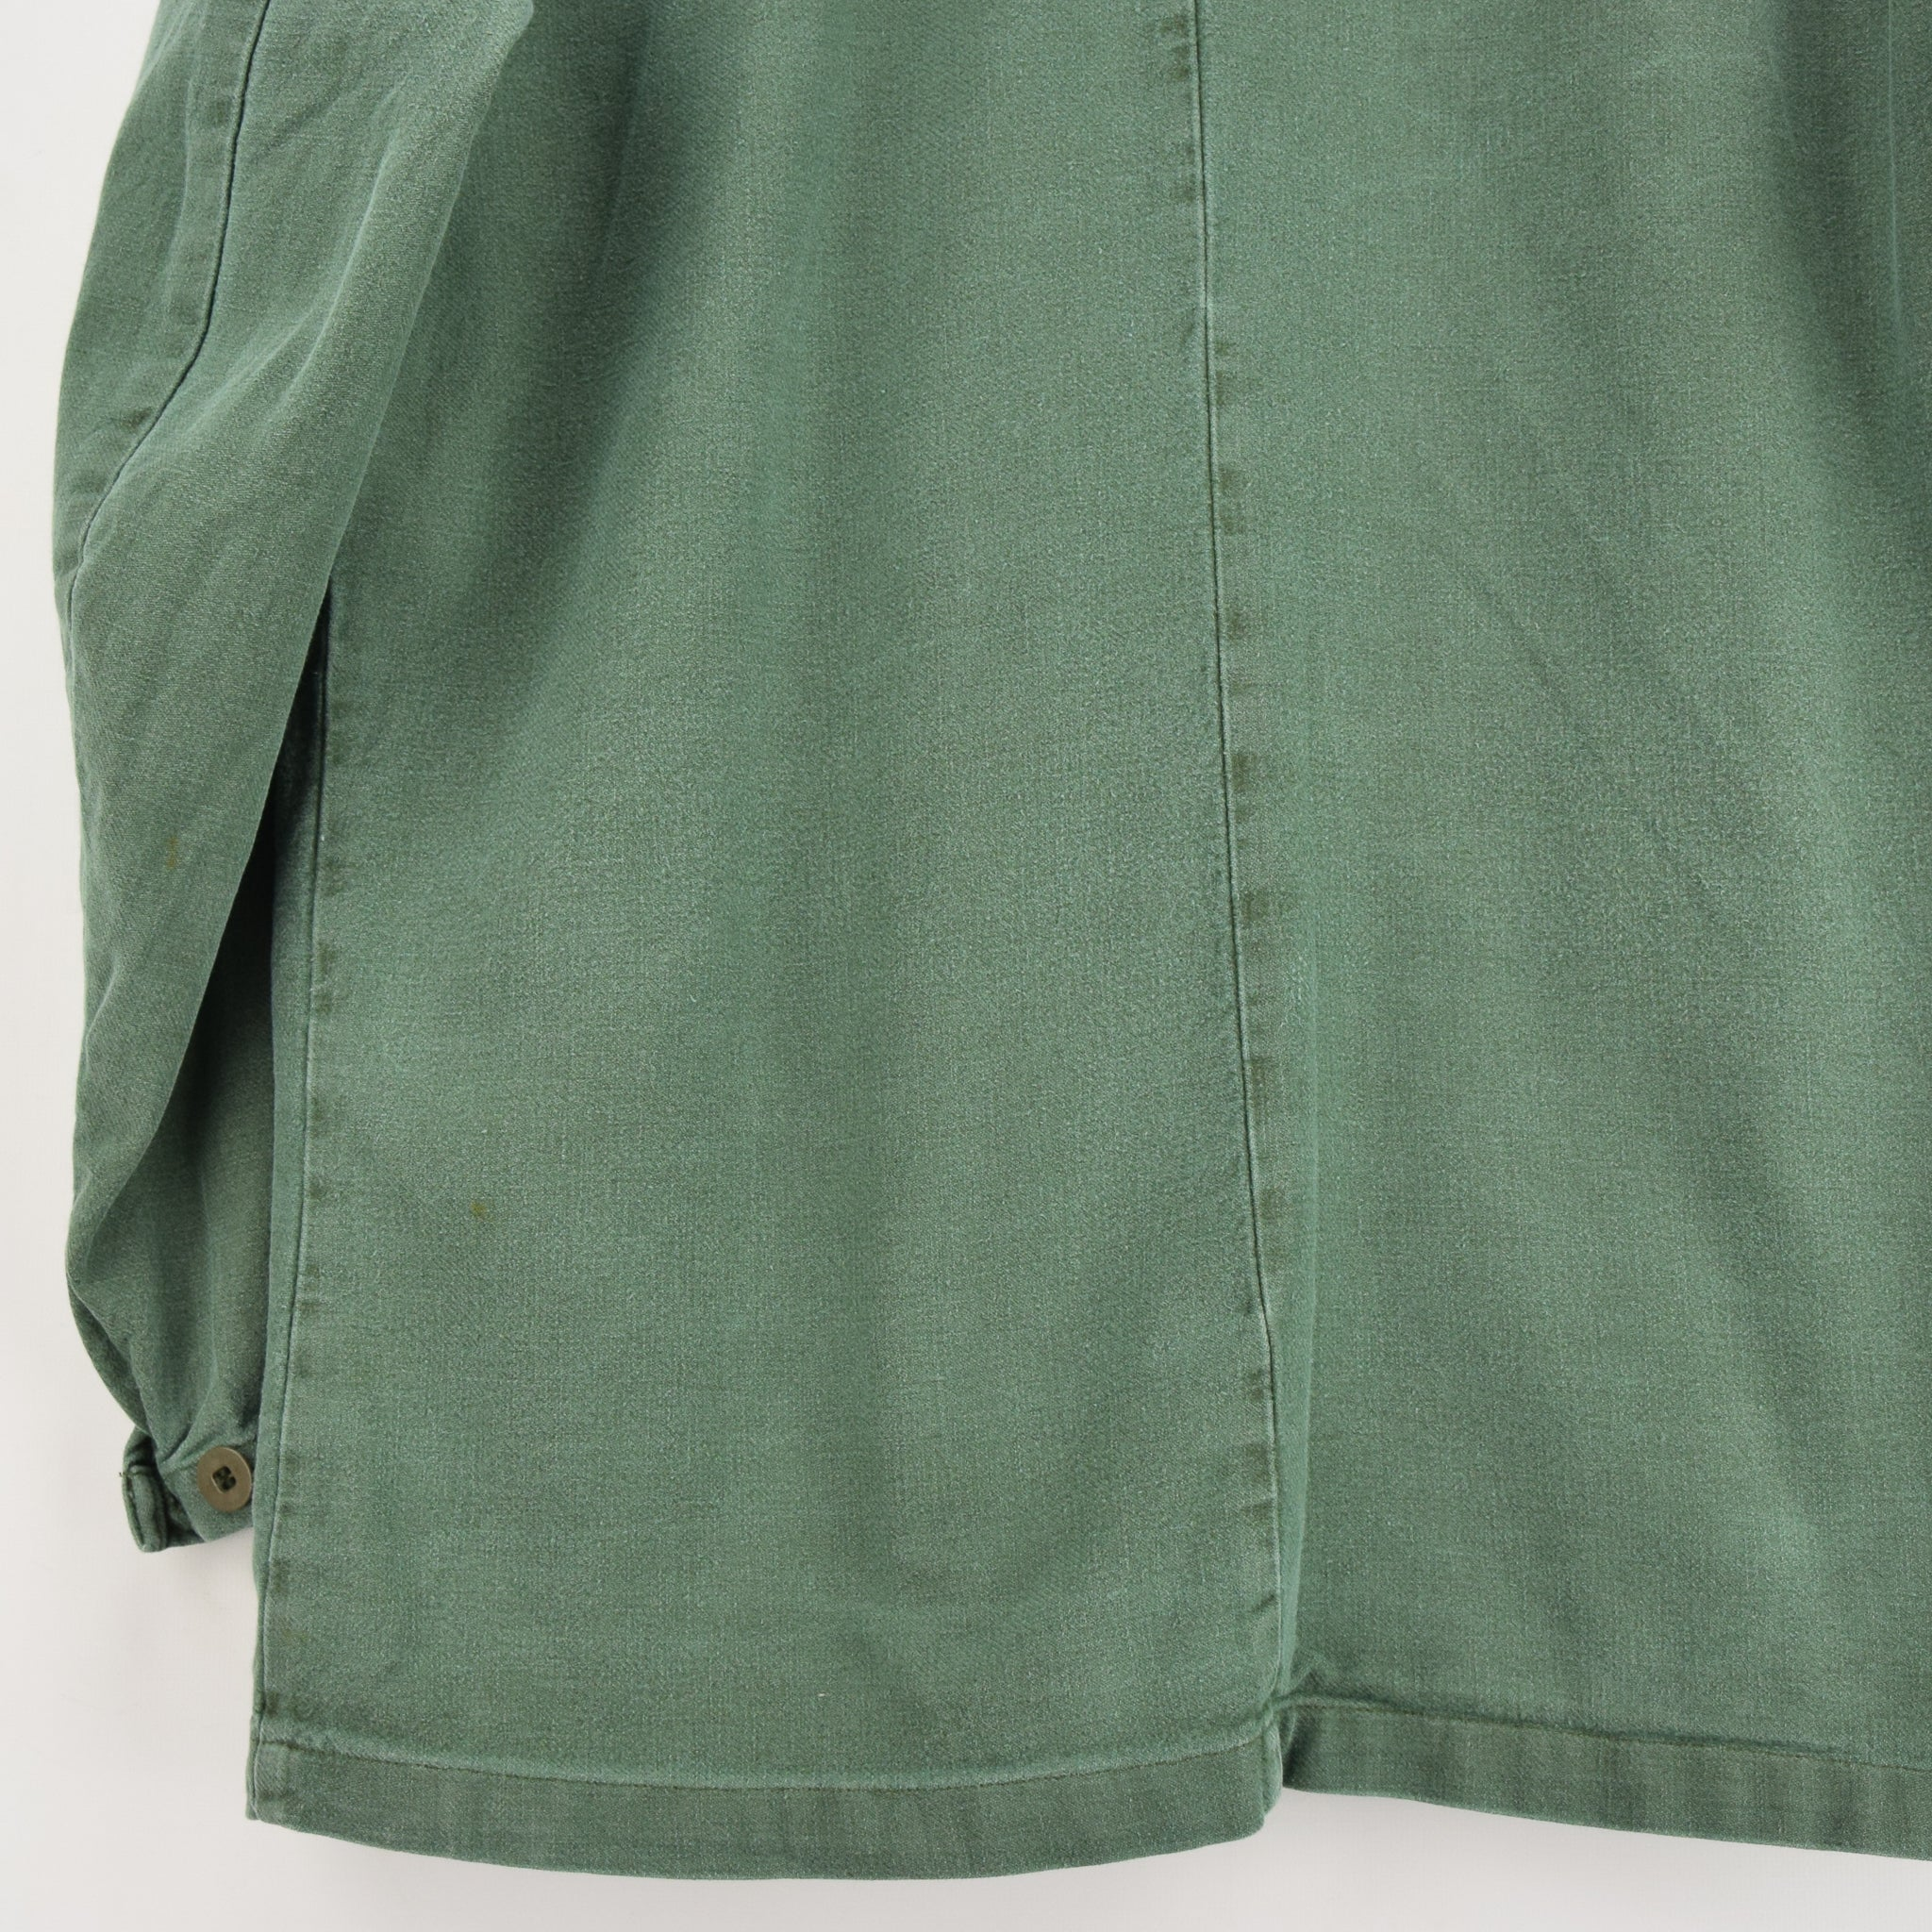 Vintage Swedish Worker Style Green Distressed Military Cotton Field Jacket M back hem